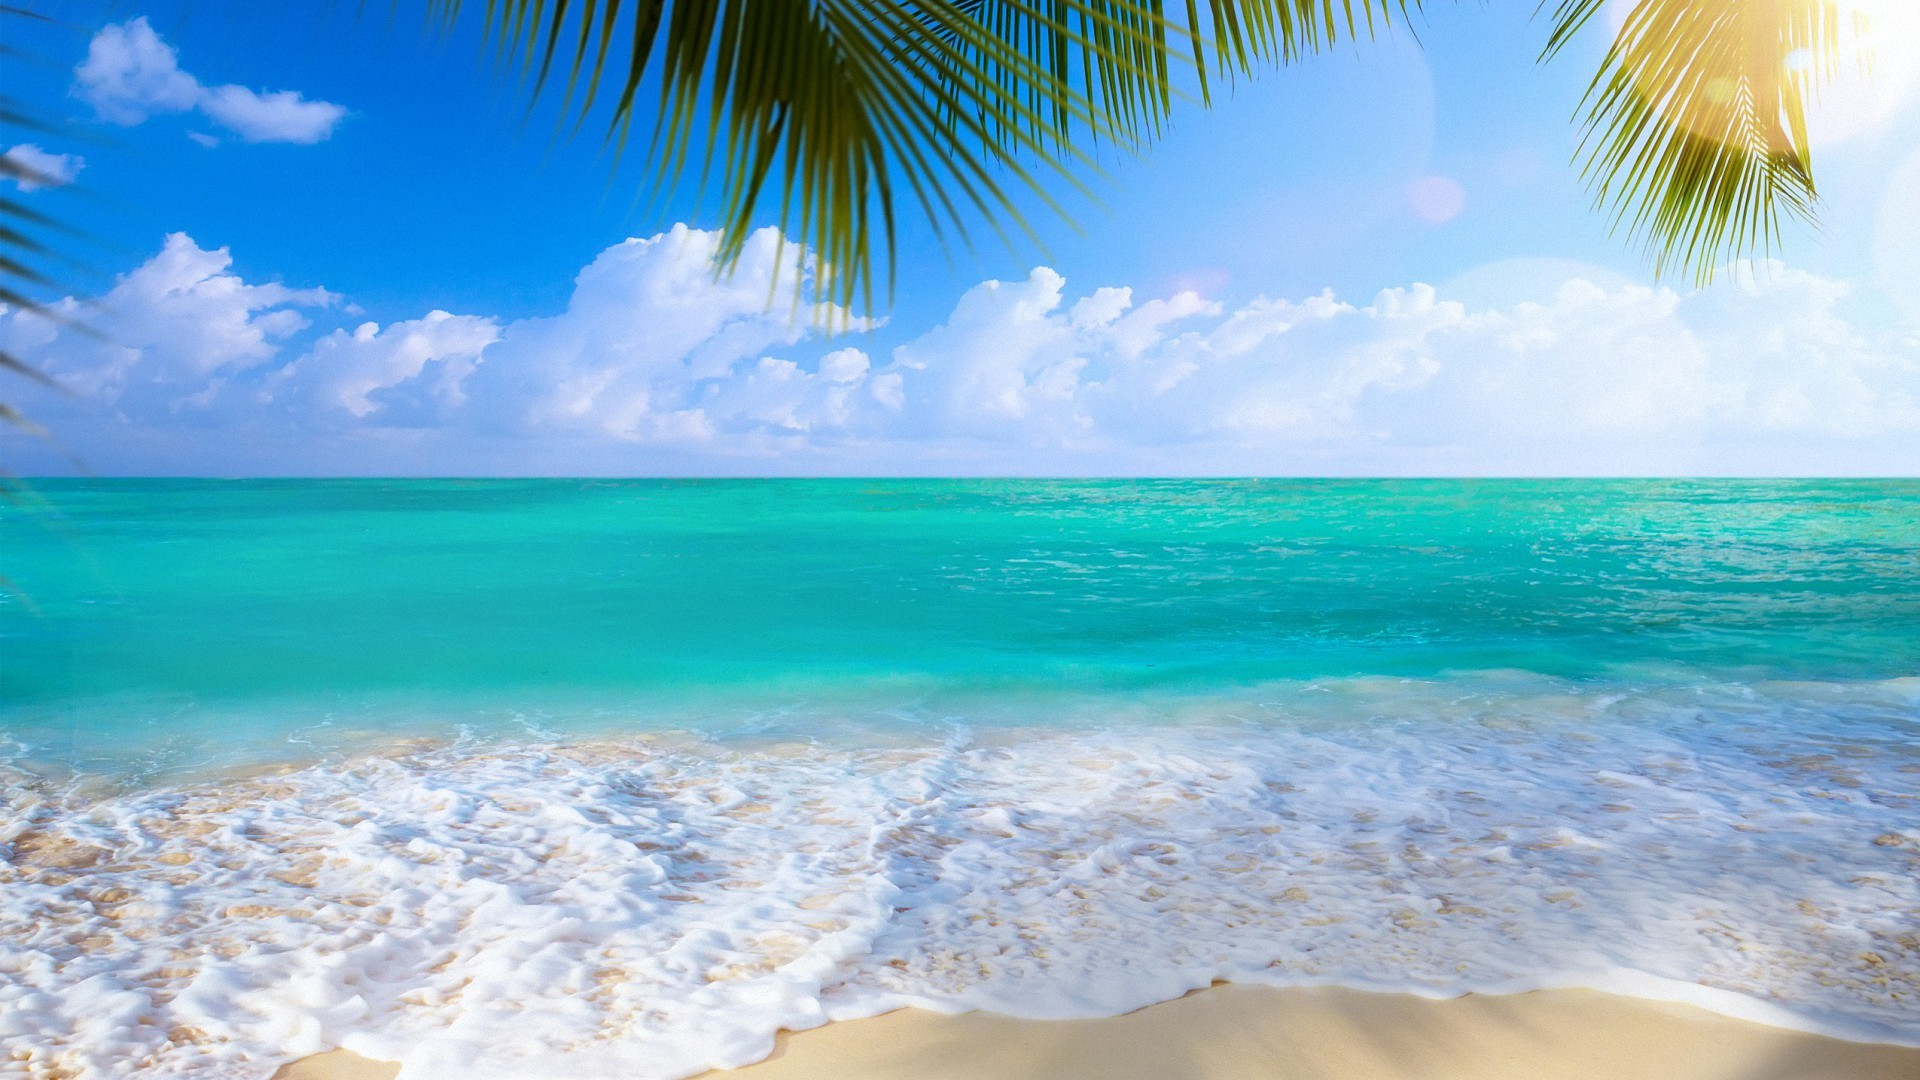 Beautiful beach backgrounds desktop